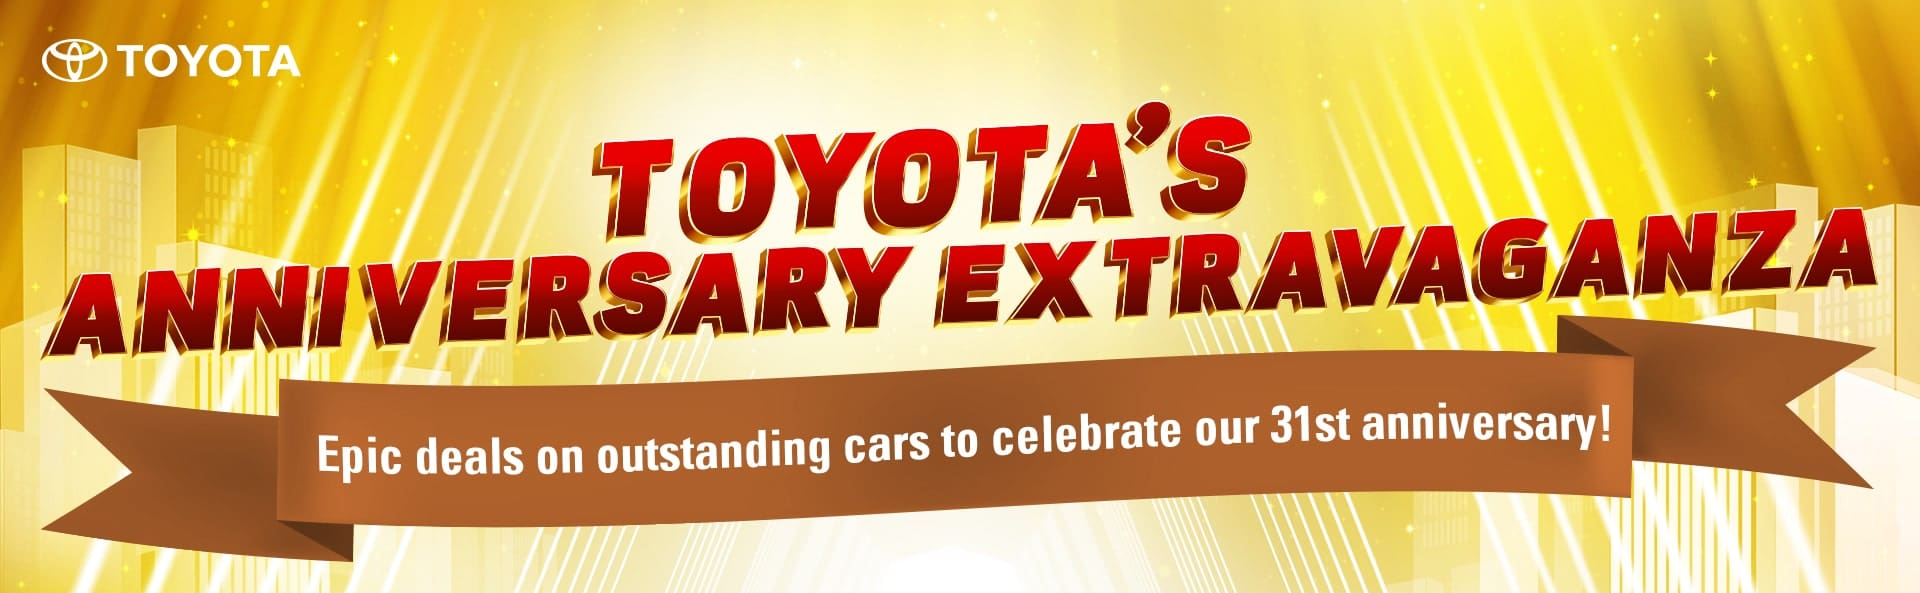 Celebrate 31 Years of Toyota with Huge Discounts, Savings This August